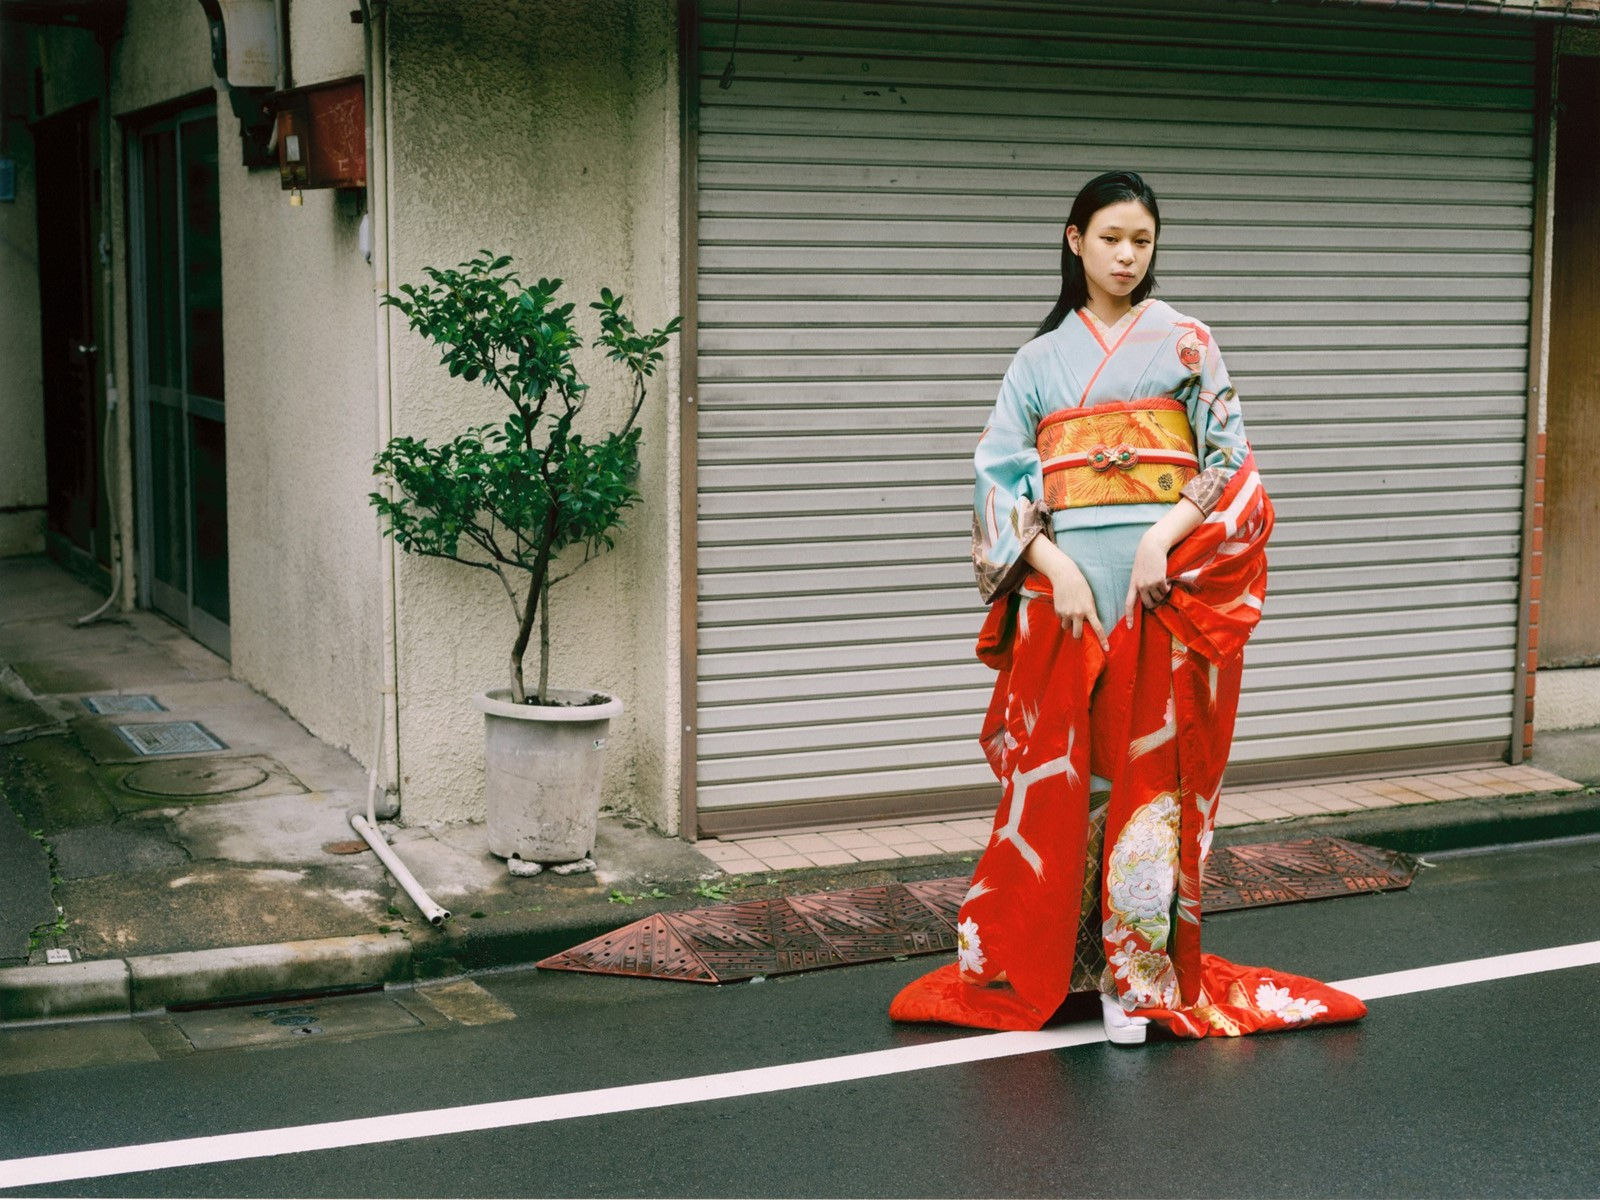 Pale Blue Furisode with Red Uchikake. Photographer